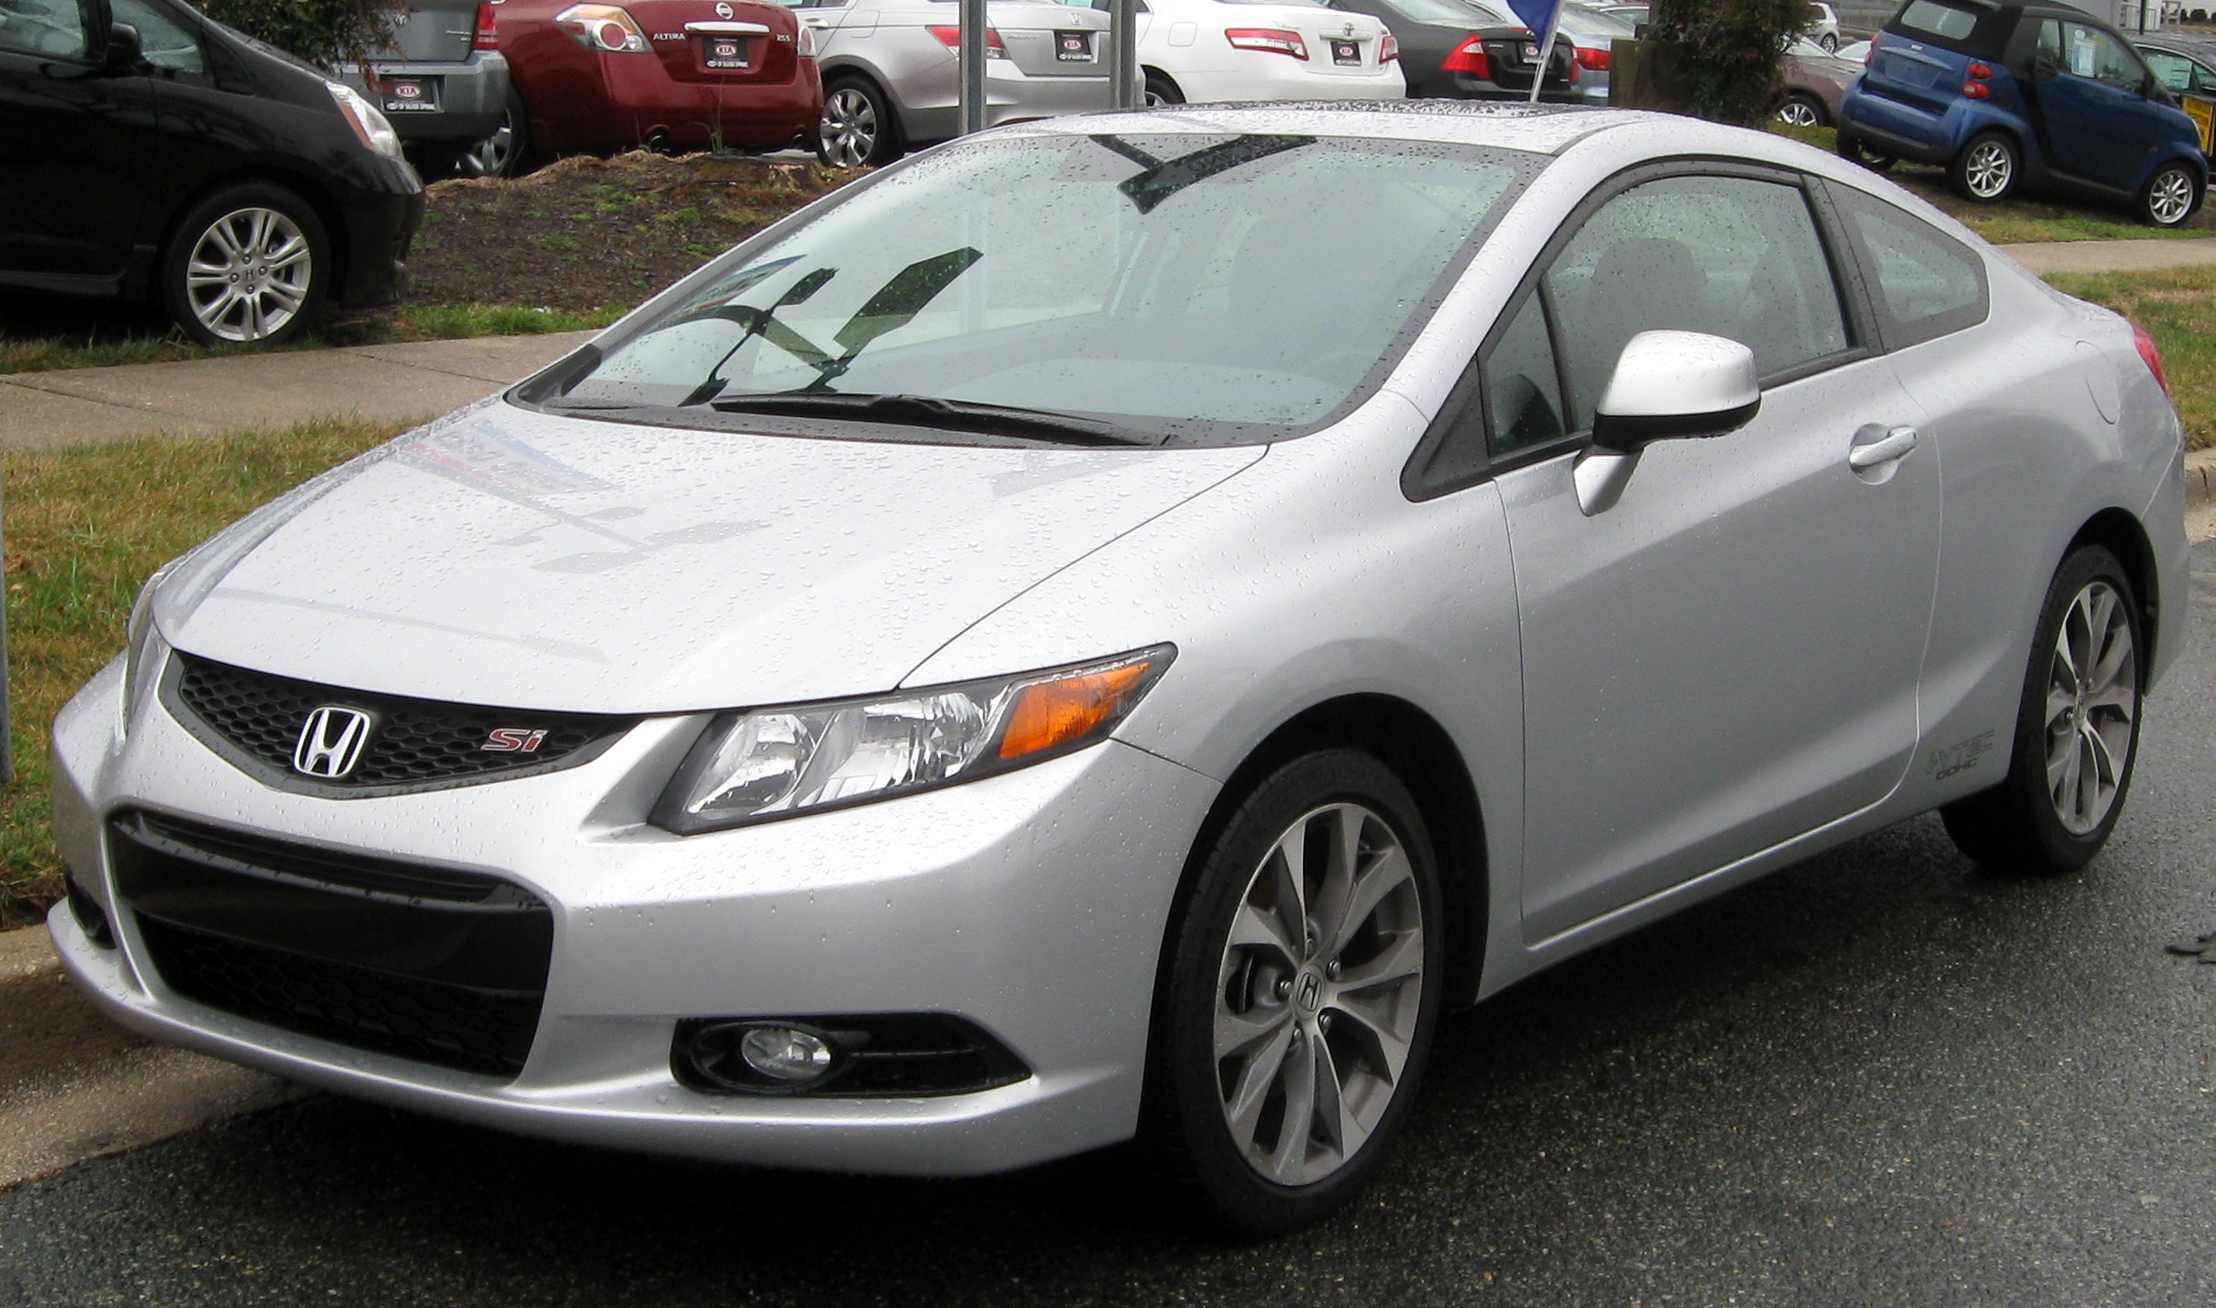 File:2012 Honda Civic Si Coupe    02 29 2012.JPG